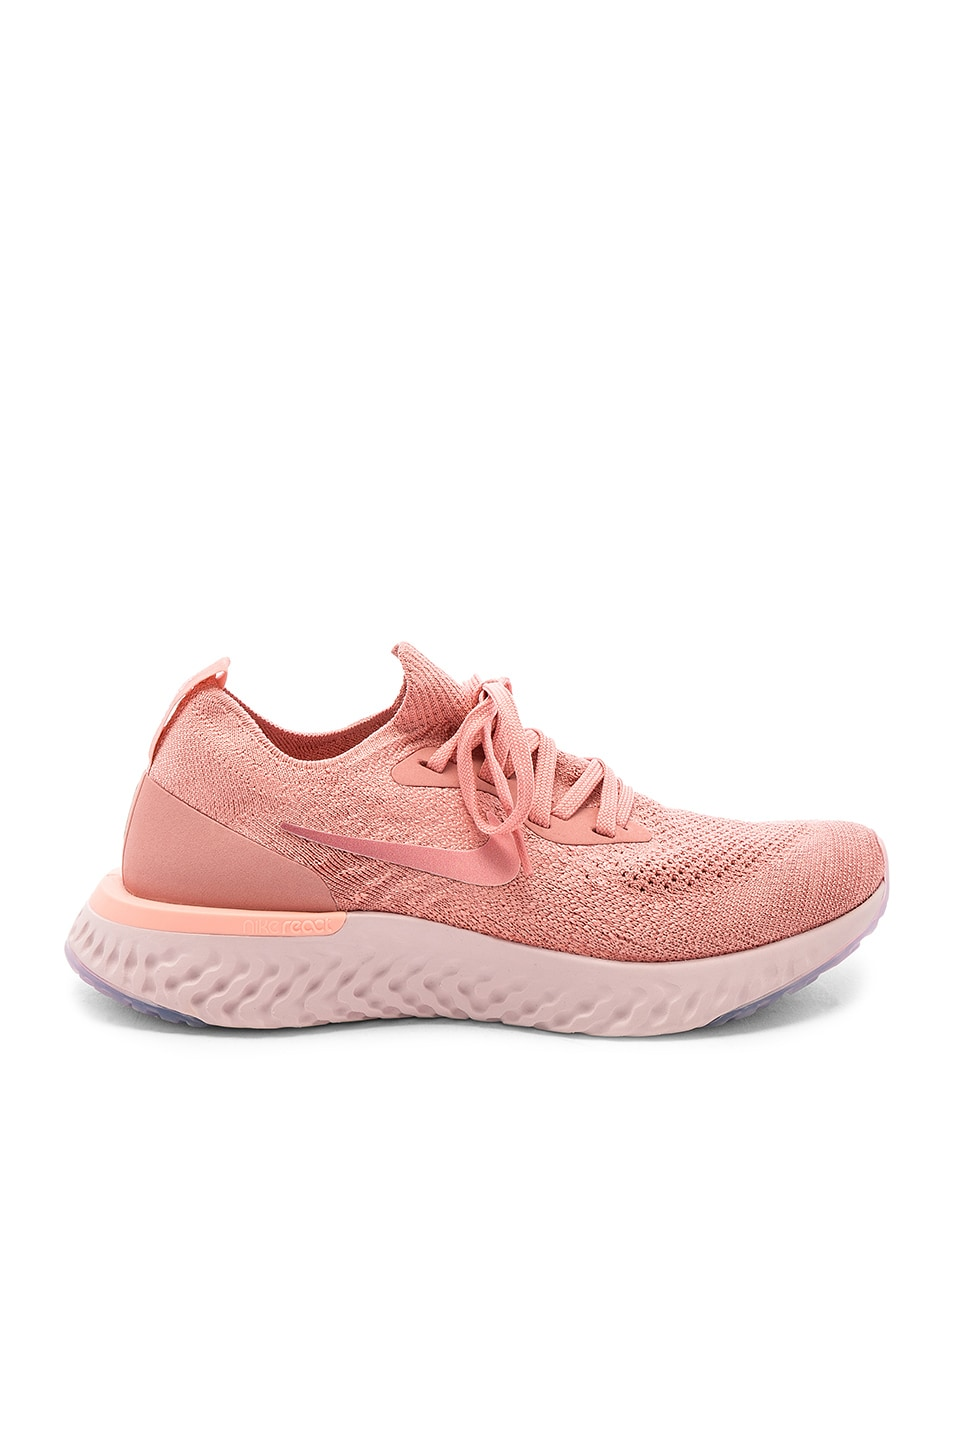 the latest 5c1a4 833c6 Nike Epic React Flyknit Sneaker in Rust Pink, Pink Tint & Tropical Pink